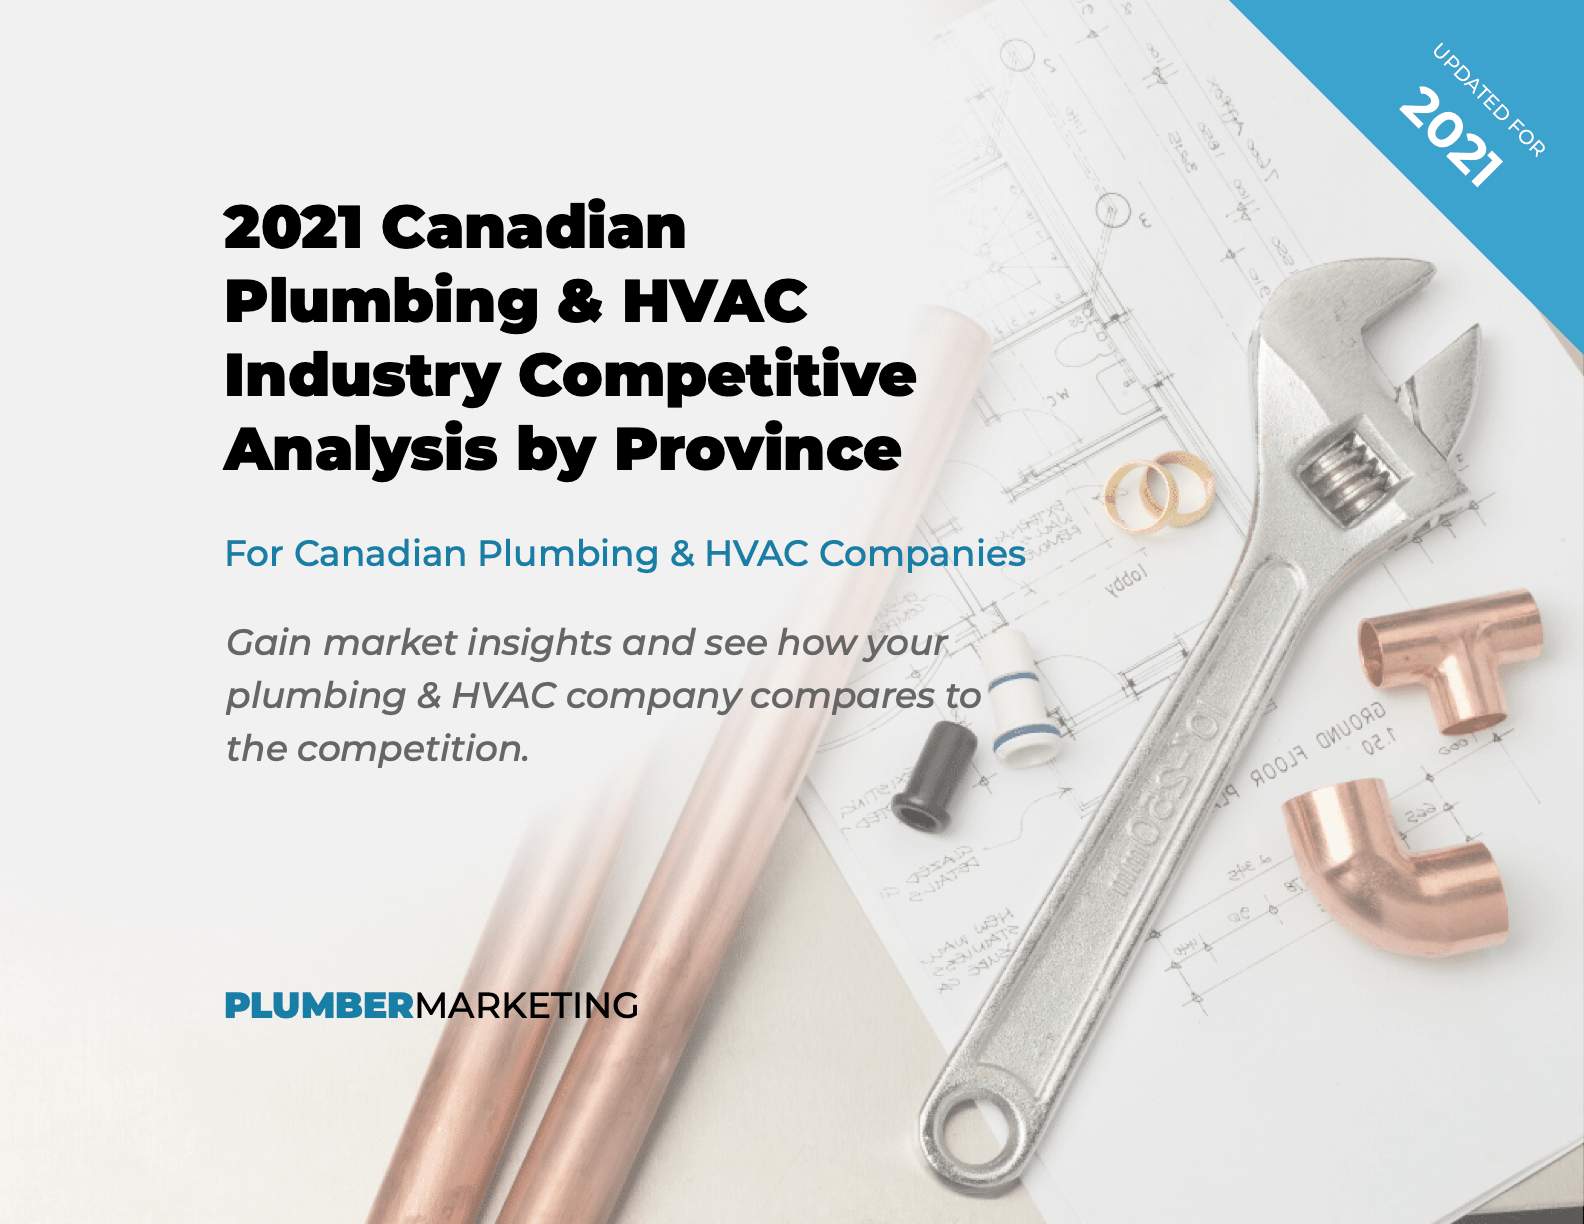 Cover of 2021 Canadian Plumbing & HVAC Competitive Analysis By Province